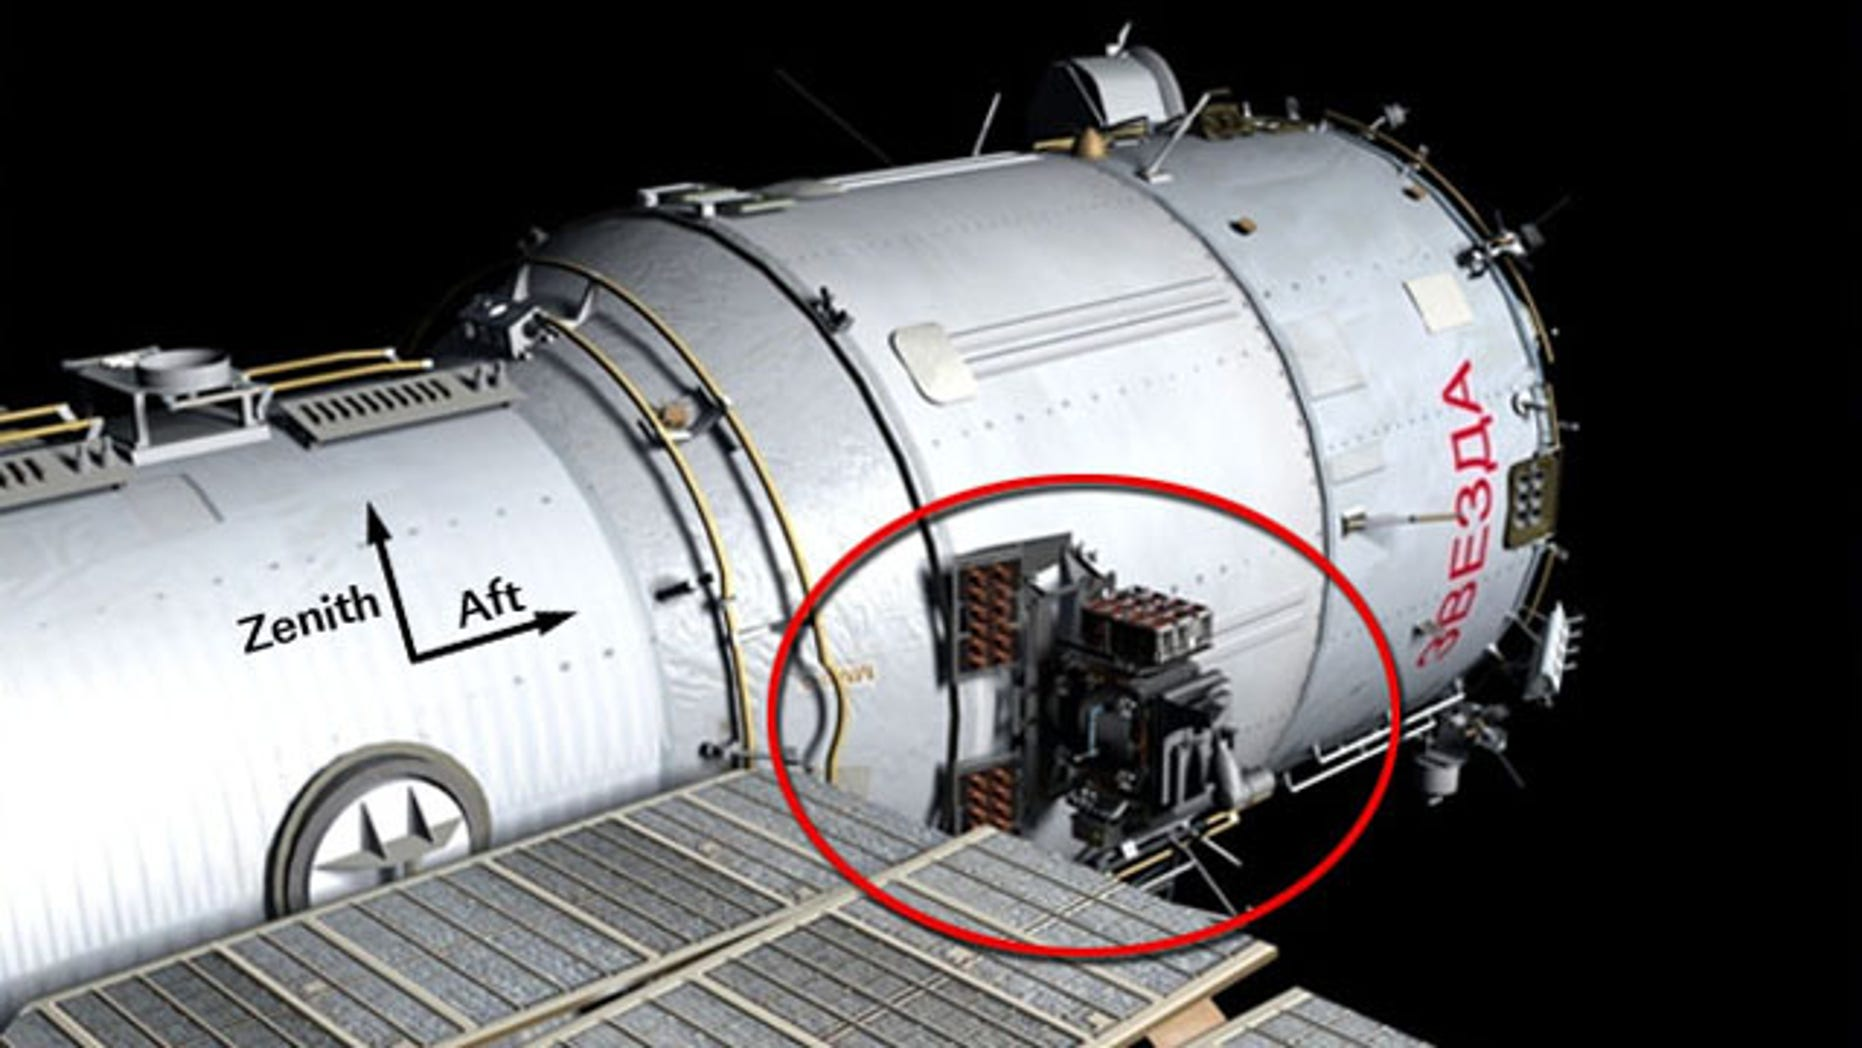 The location of the Expose-R and IPI-SM worksite outside the International Space Station, where two Russian cosmonauts will install a new high-speed data transmission system, remove an old plasma pulse experiment, install a camera for the new Rassvet docking module and retrieve a materials exposure package.